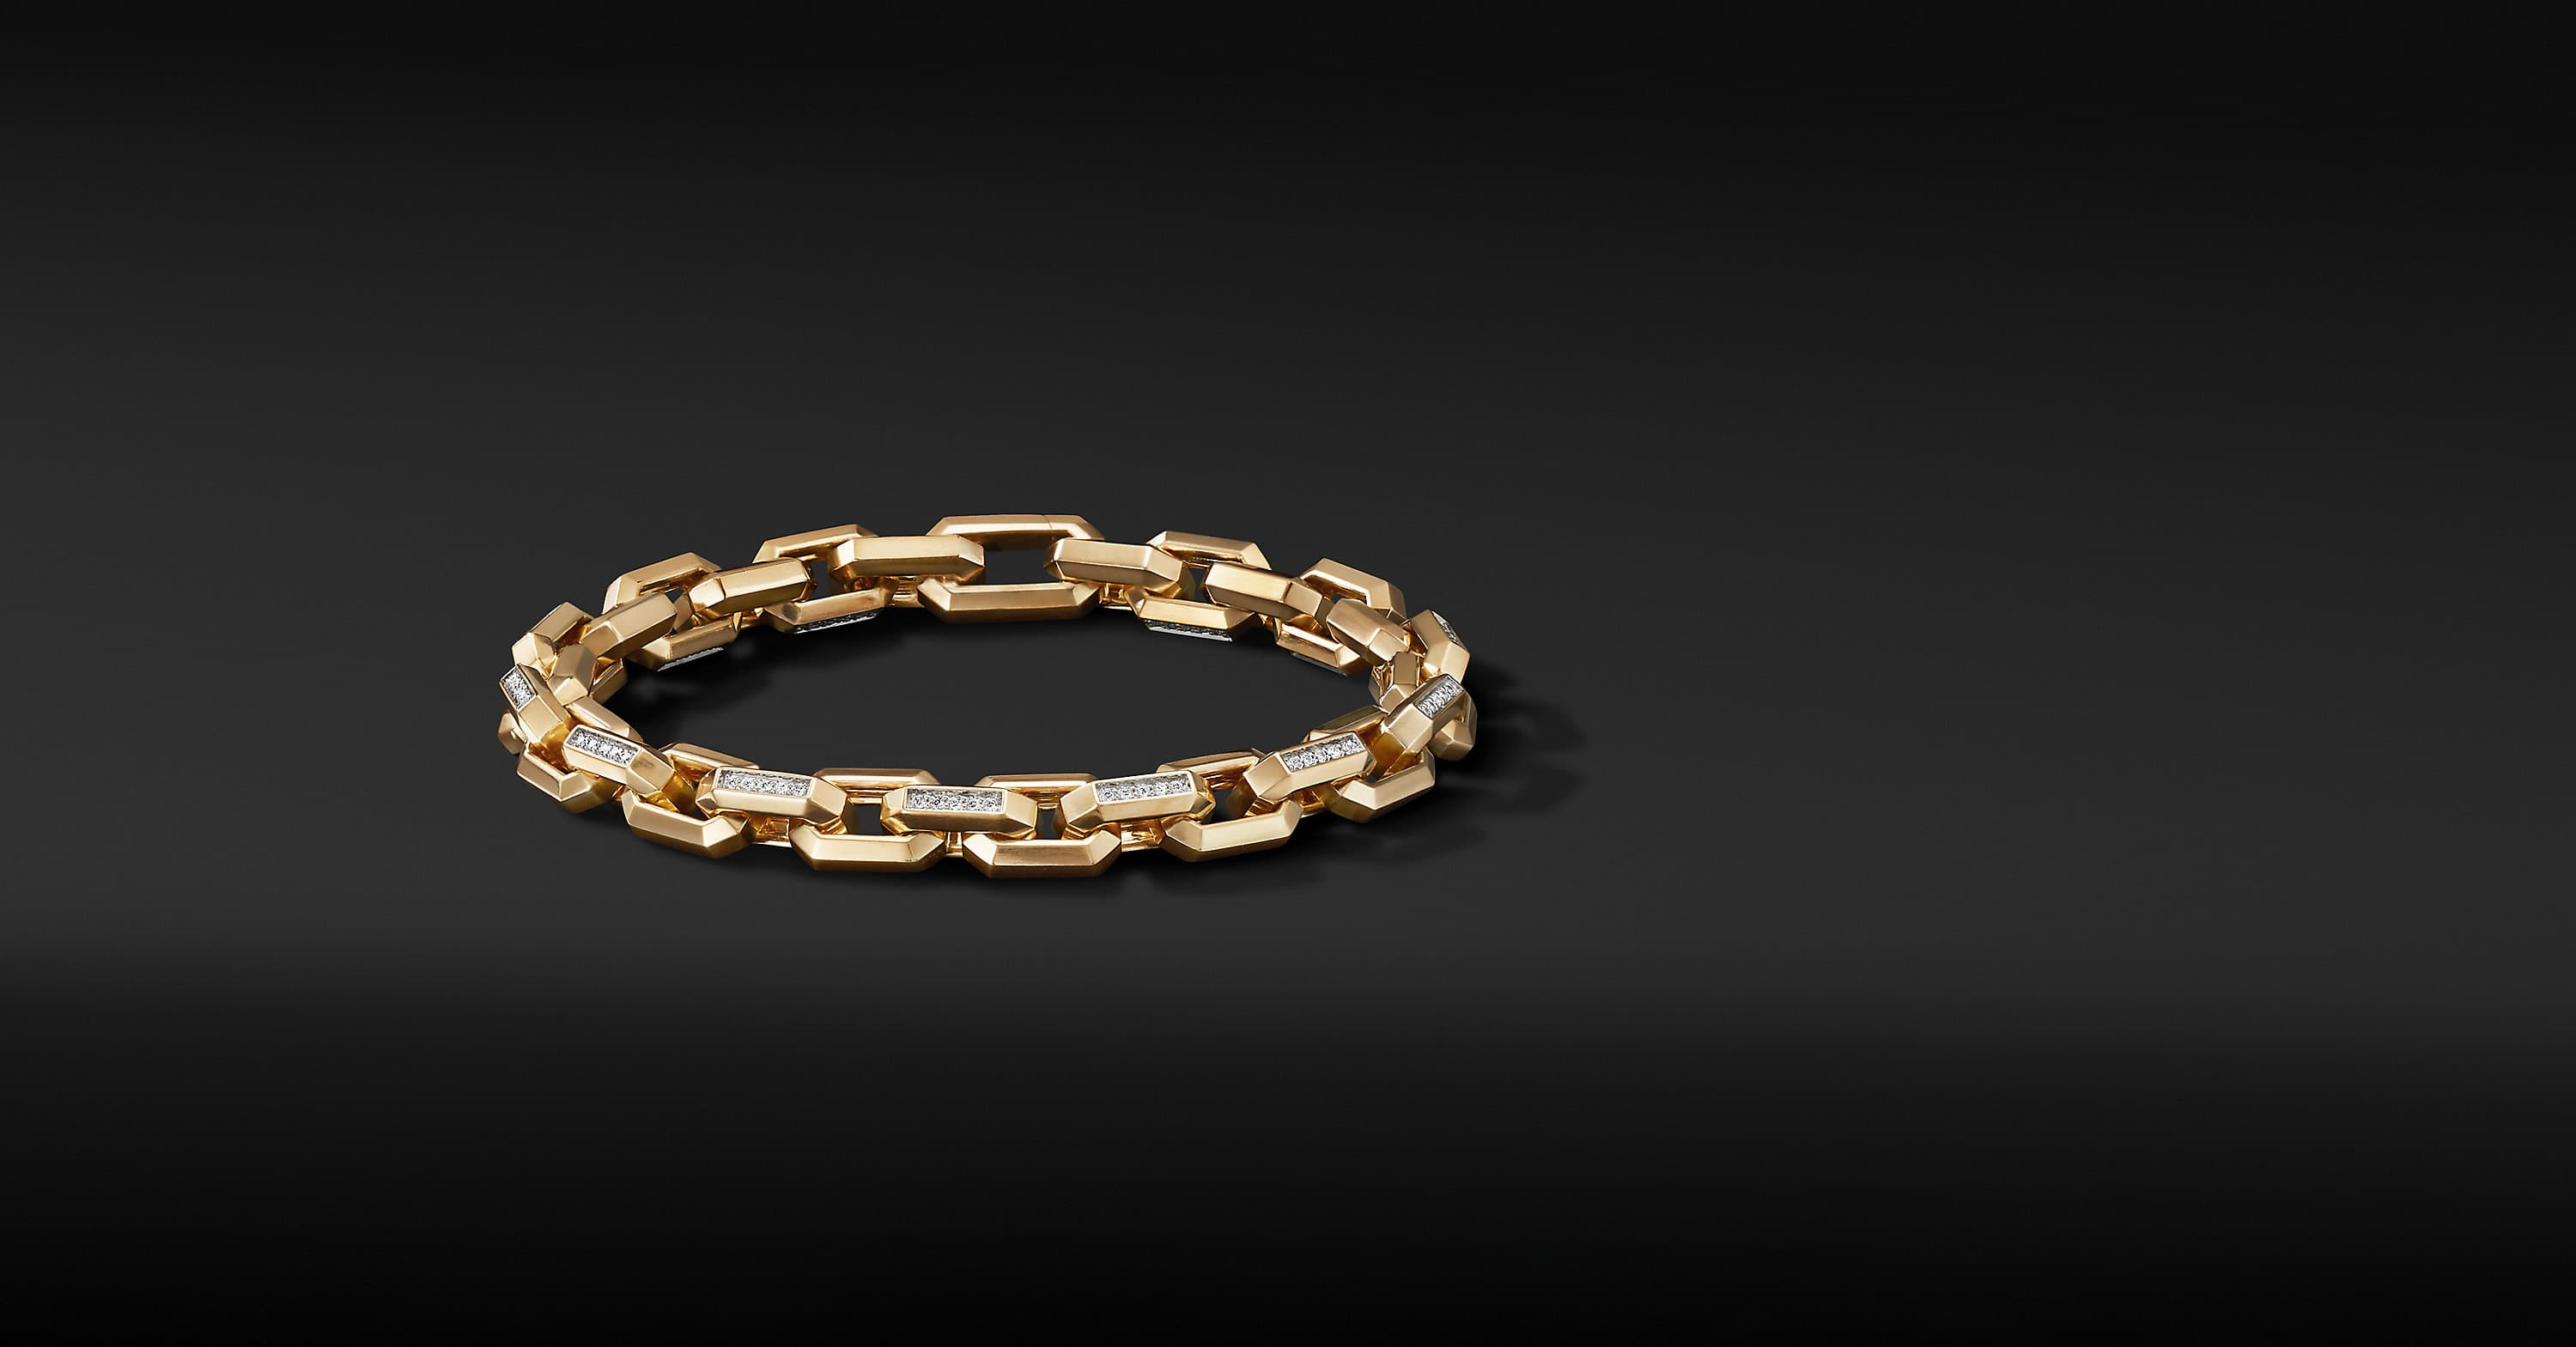 Heirloom Chain Link Bracelet in 18K Yellow Gold, 7.5mm